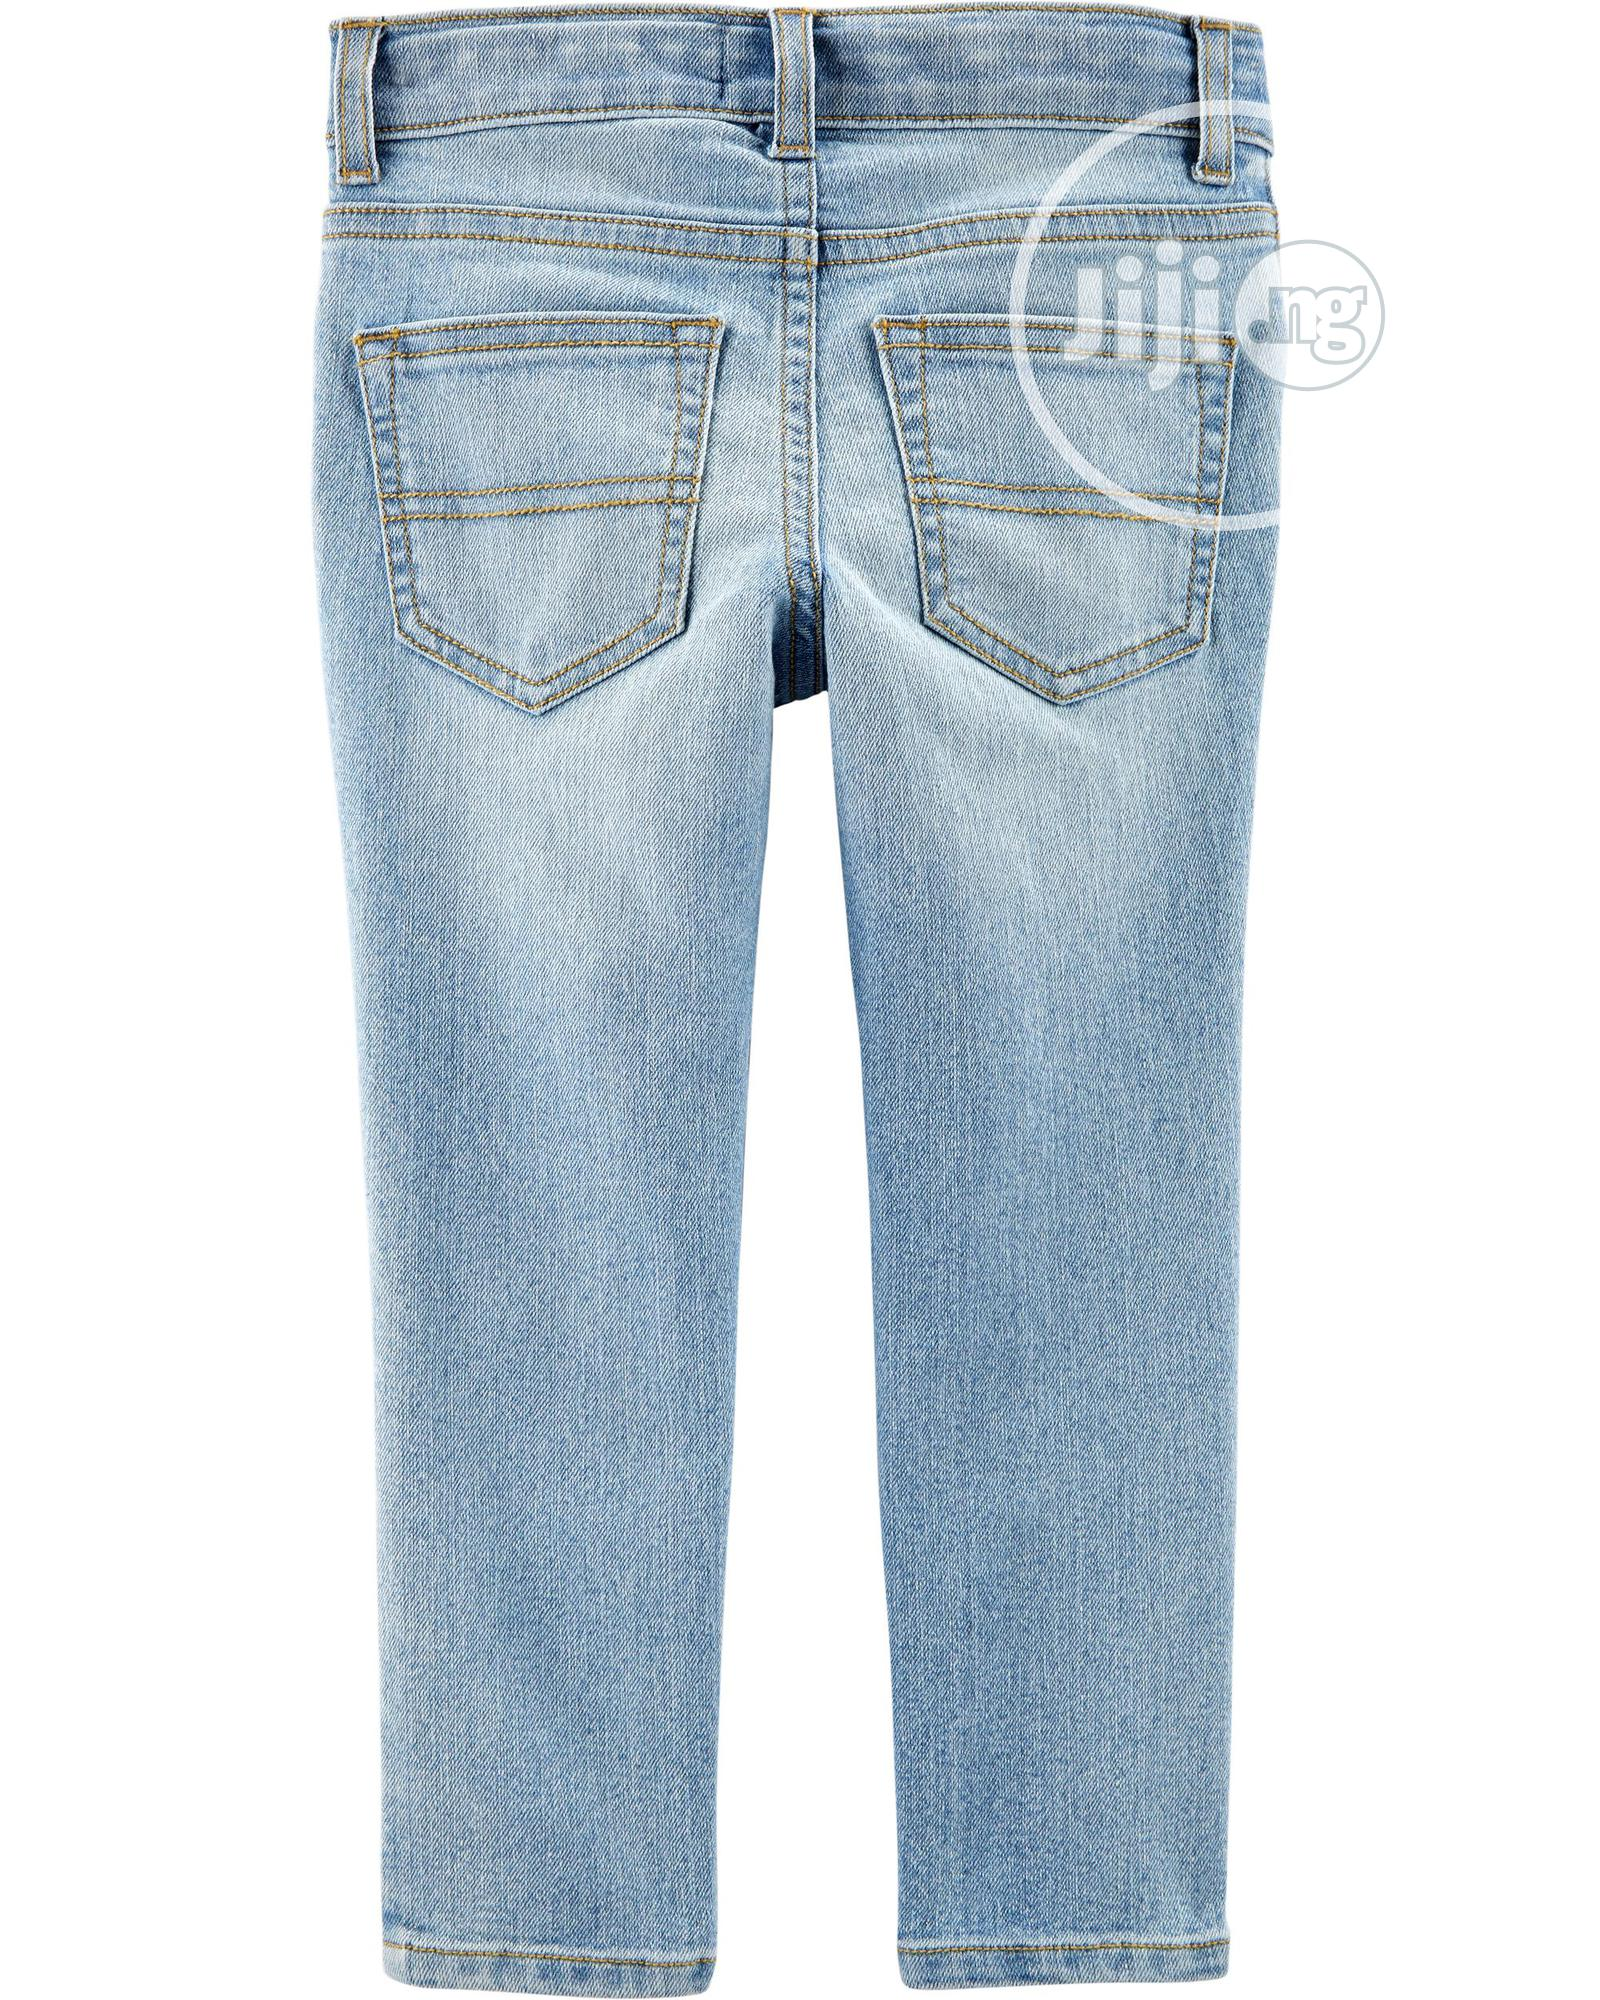 Rip-And-Repair Skinny Jeans | Children's Clothing for sale in Ajah, Lagos State, Nigeria